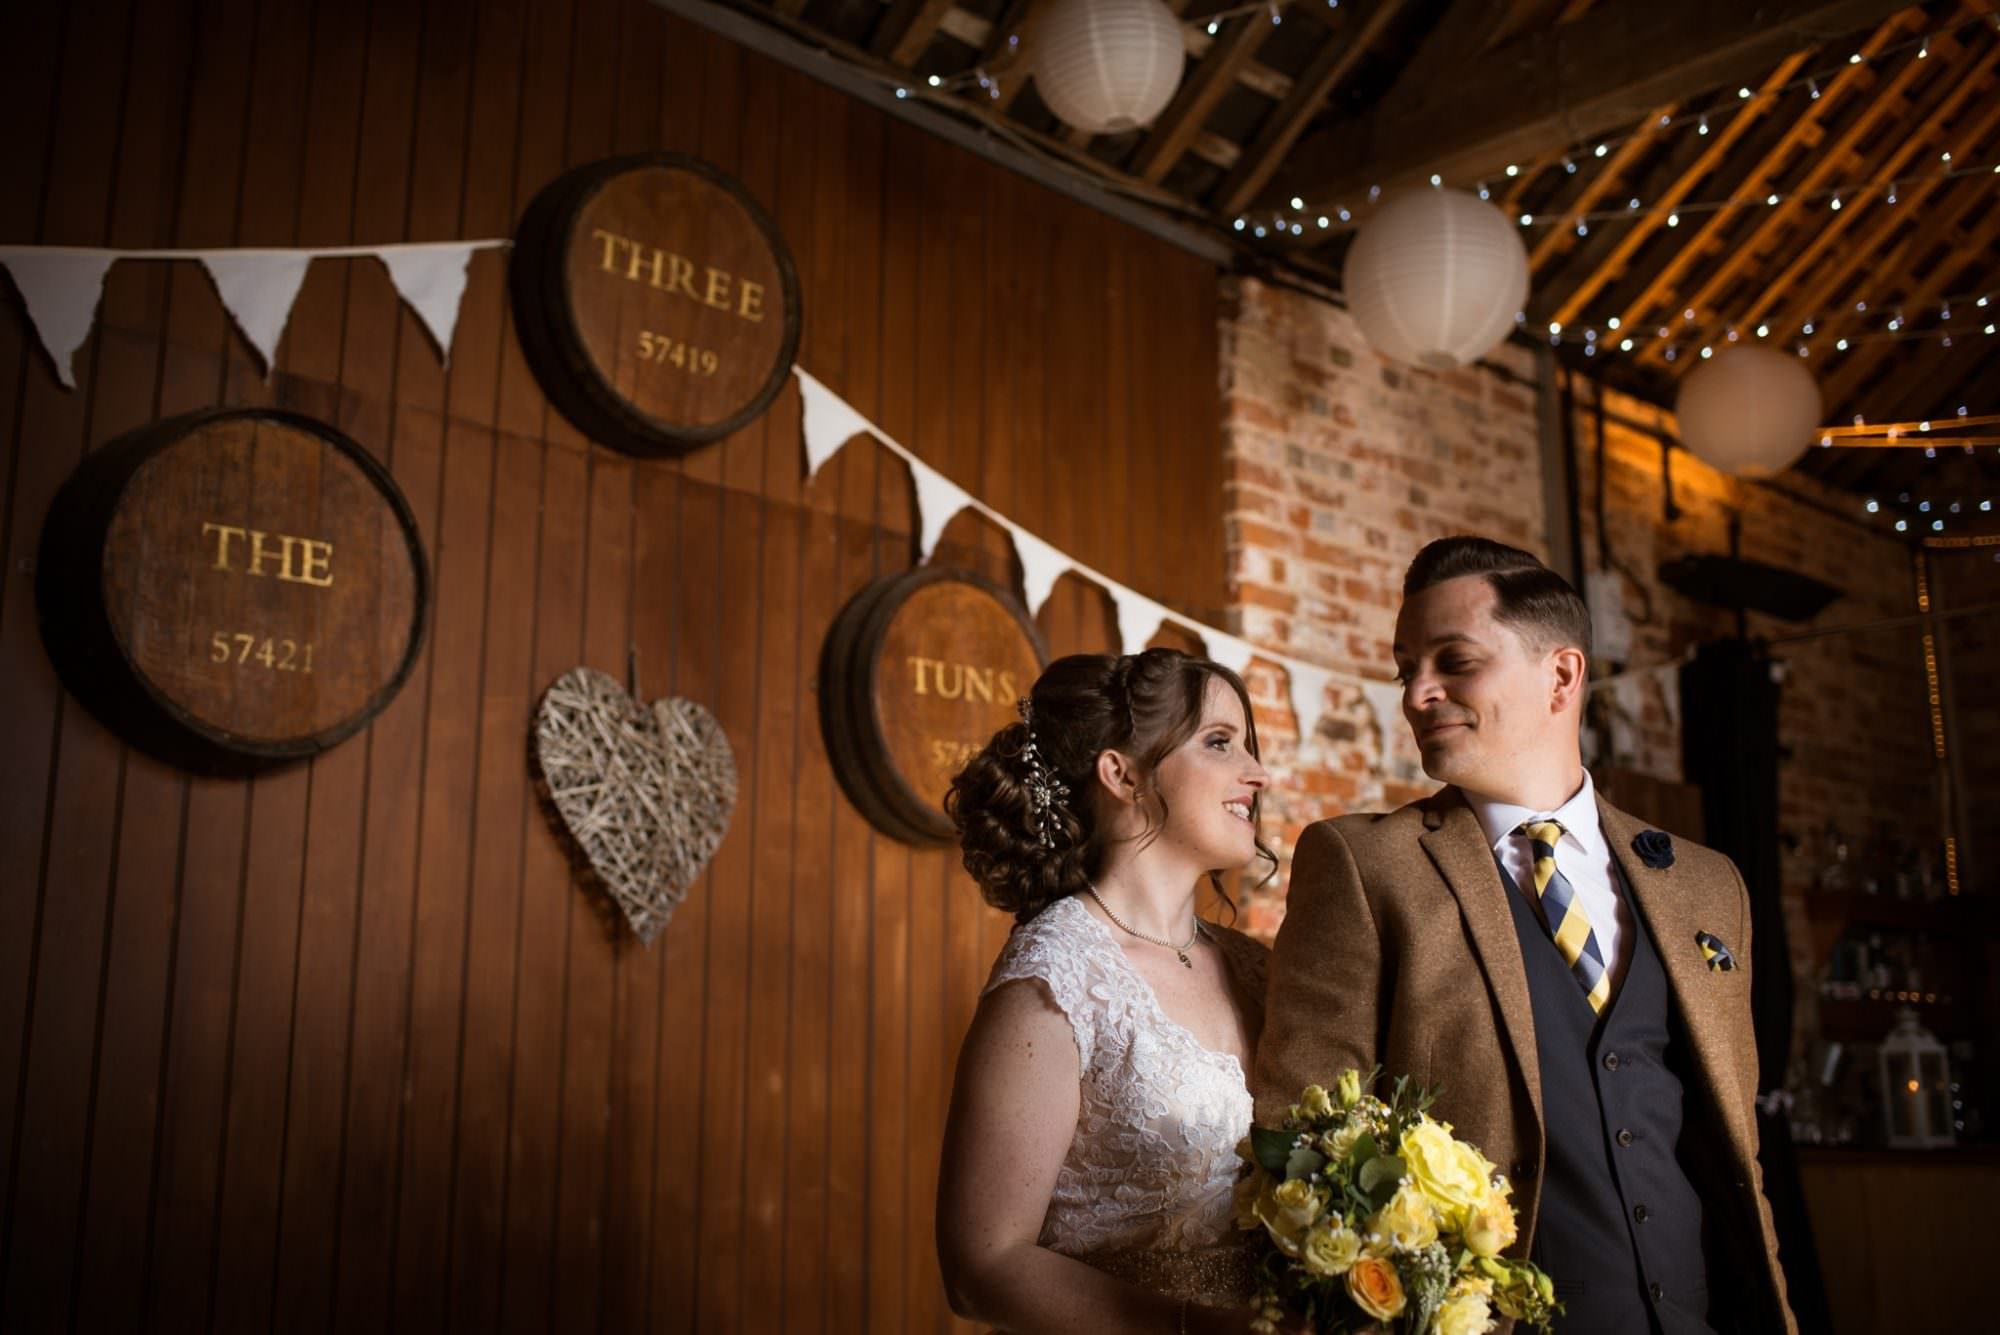 Wedding at Three Tuns Wedding in Bransgore by Hampshire Photographer